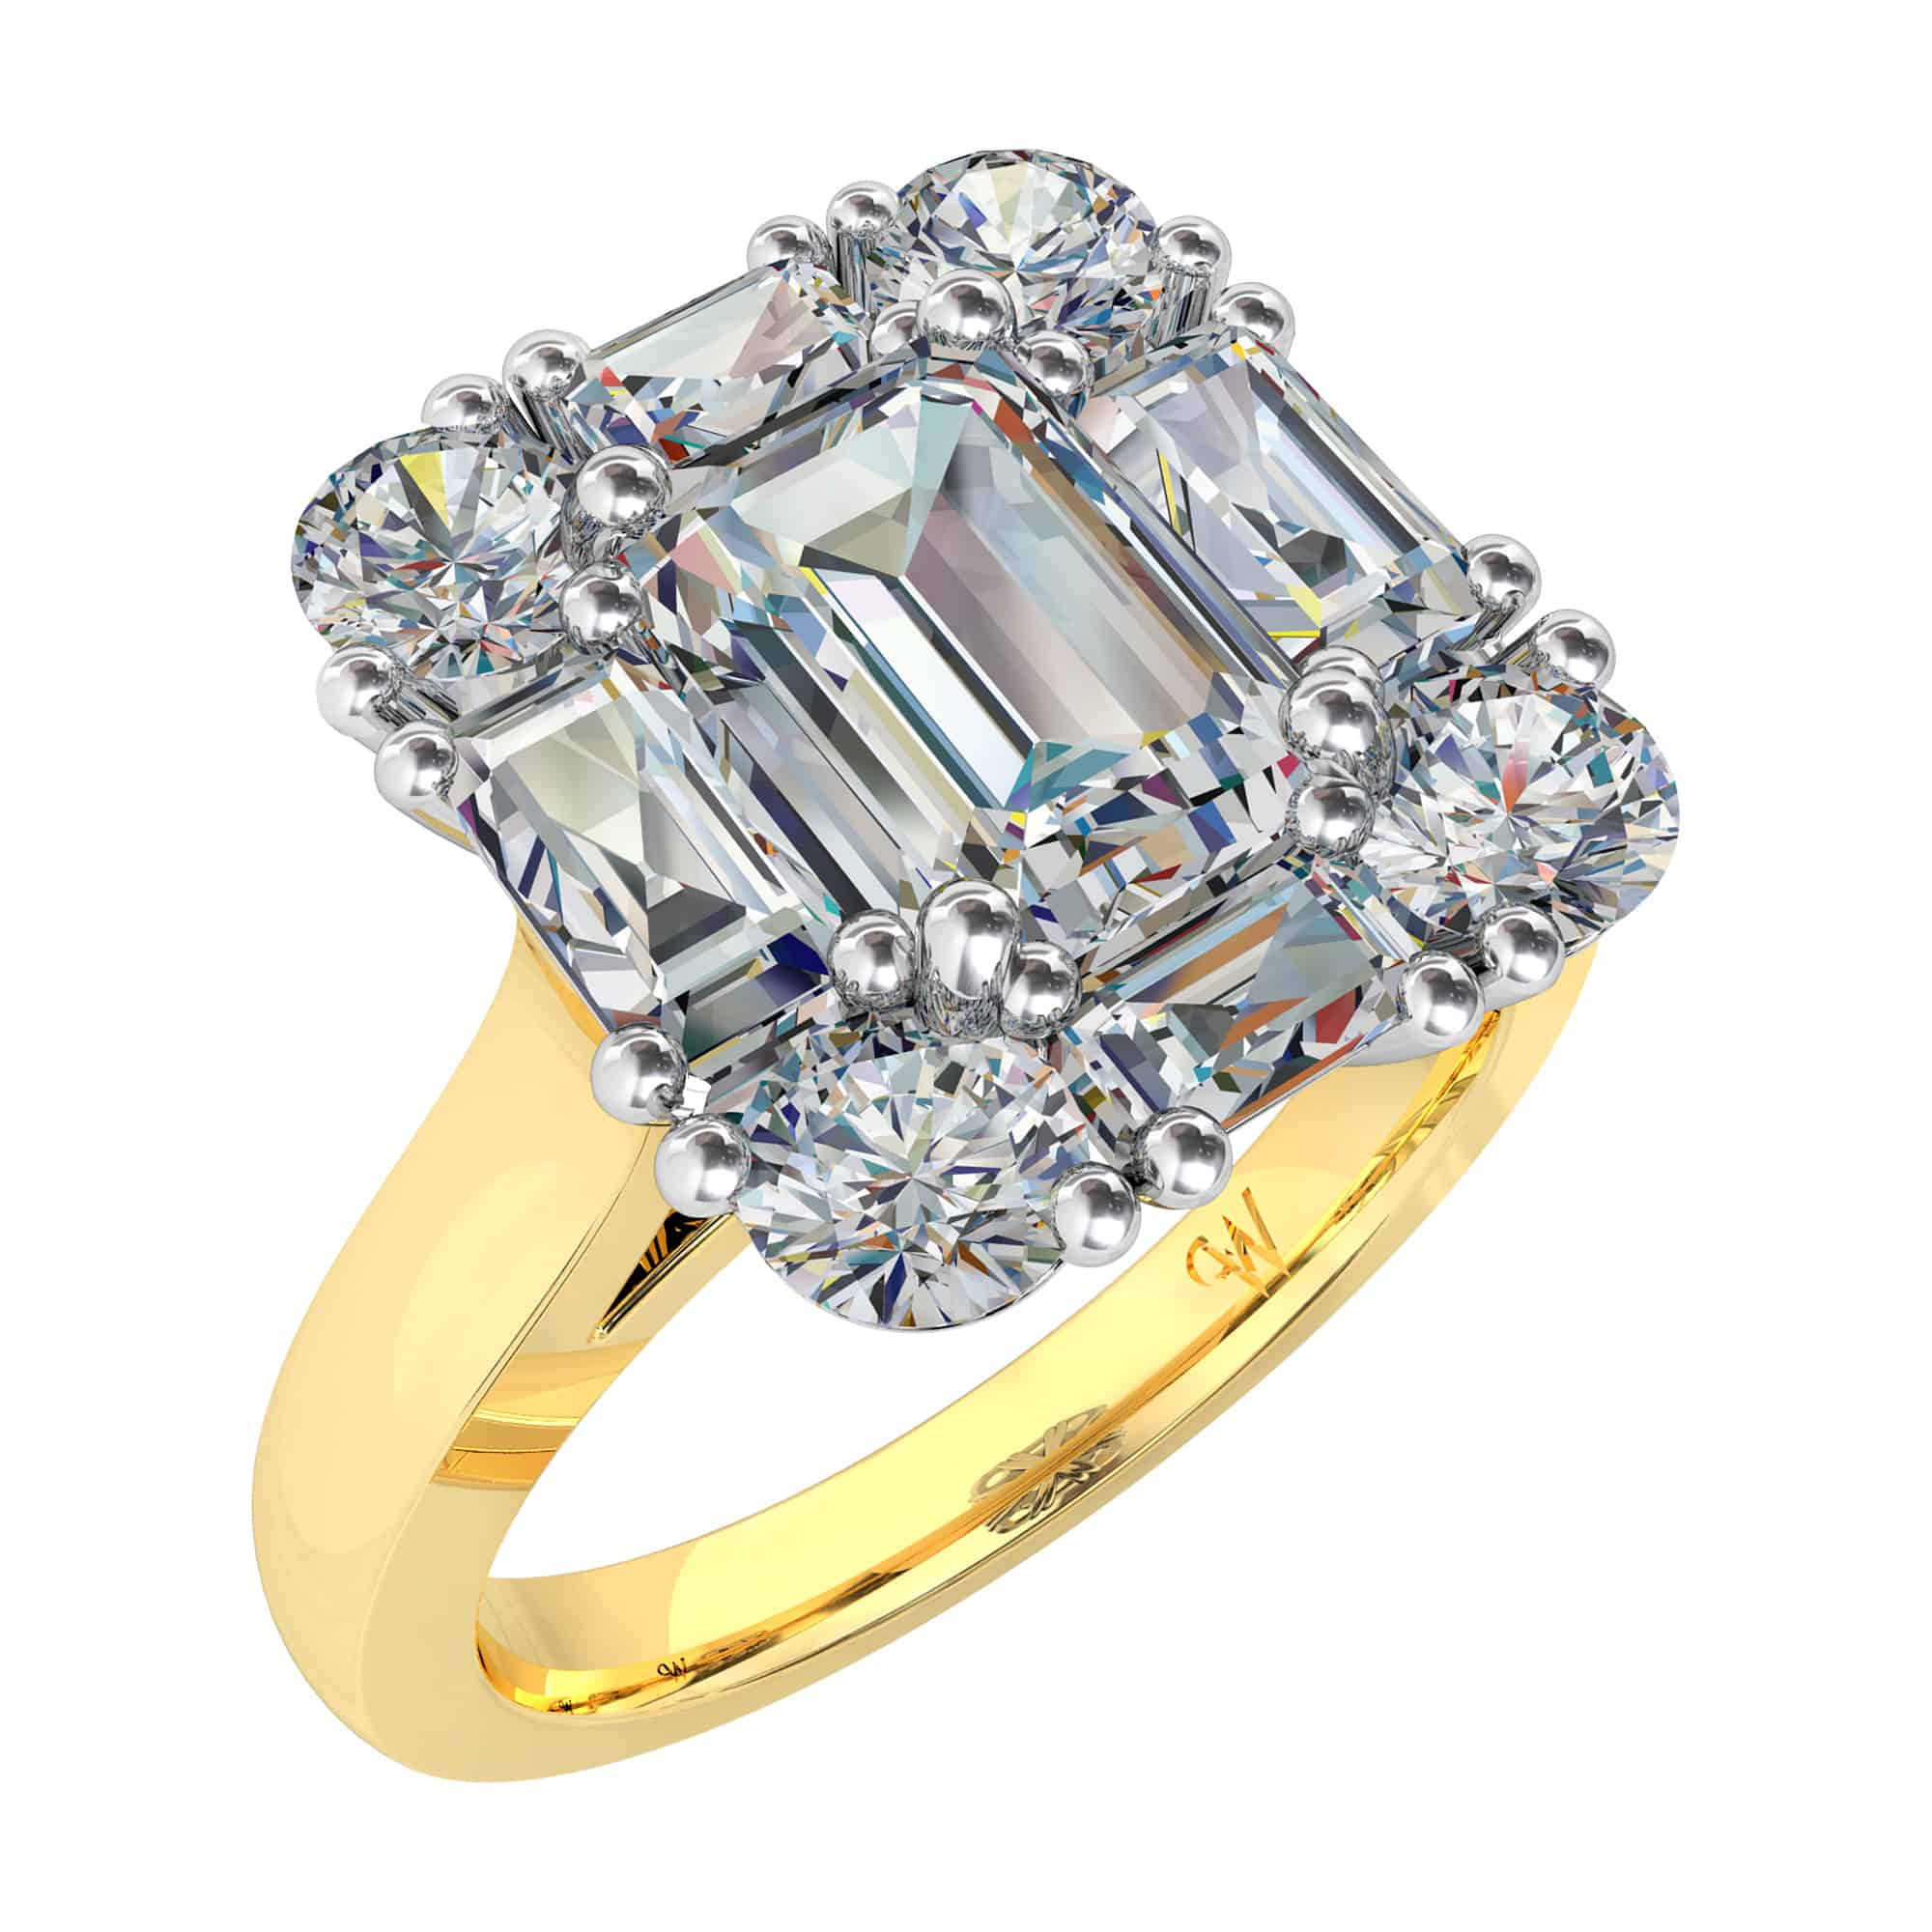 bullet sp jewellery adasco rings asscher engagement designs and taper cut